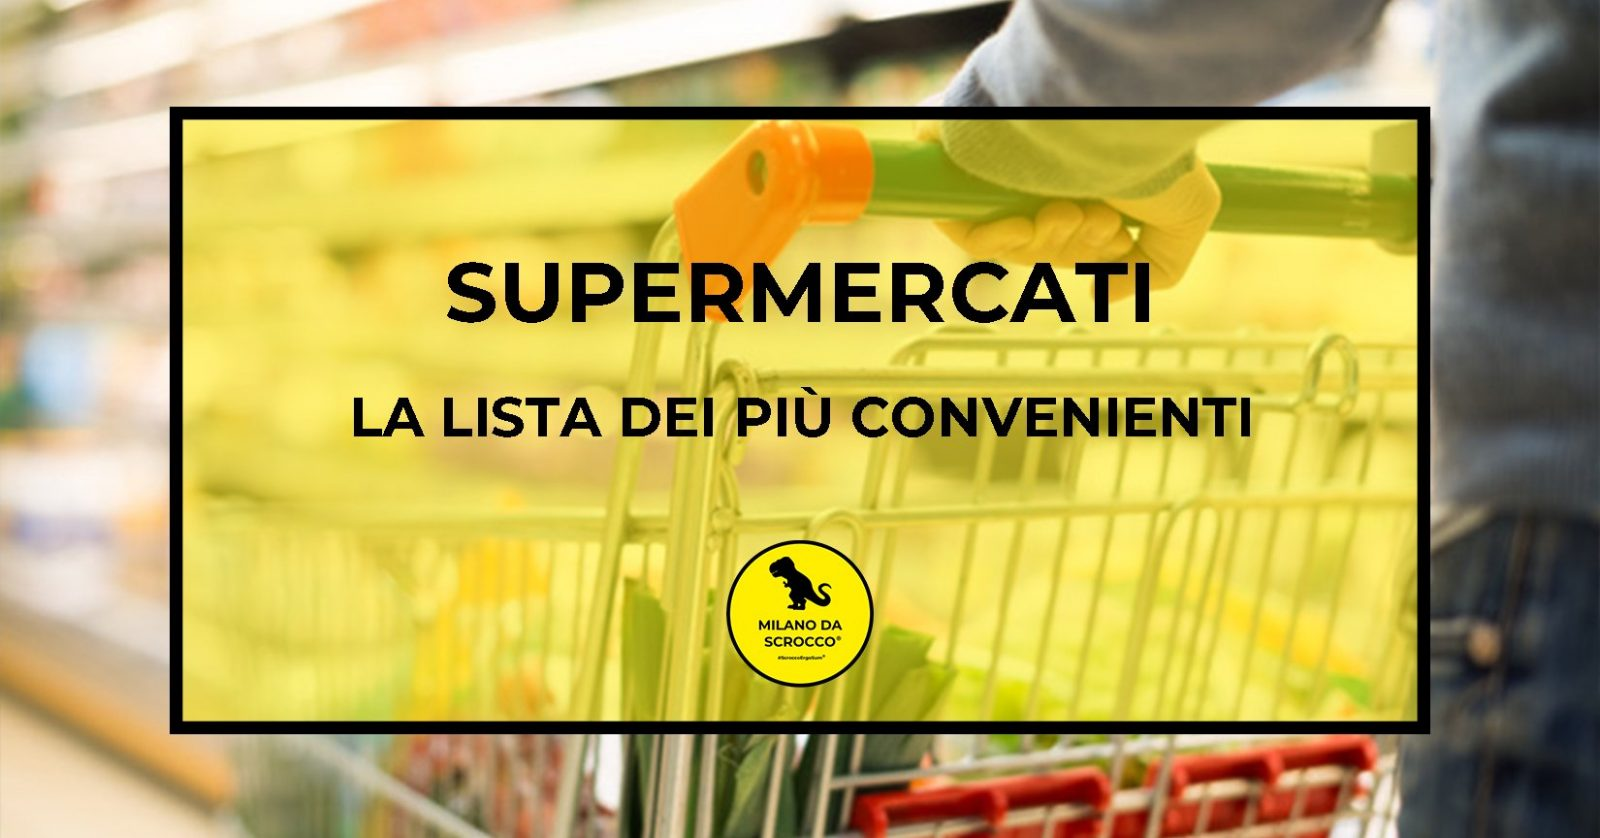 Supermercati: la classifica dei più convenienti